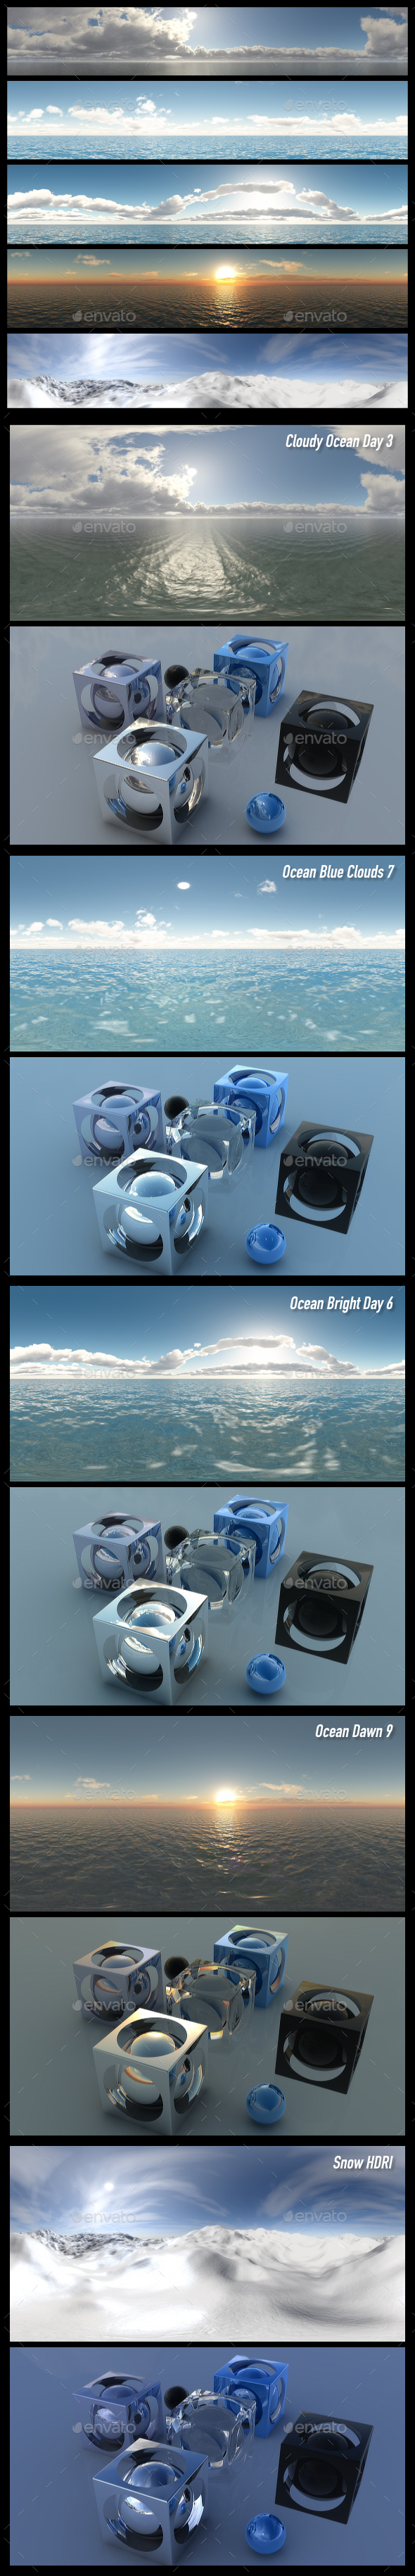 HDRI Pack 10 - 3DOcean Item for Sale